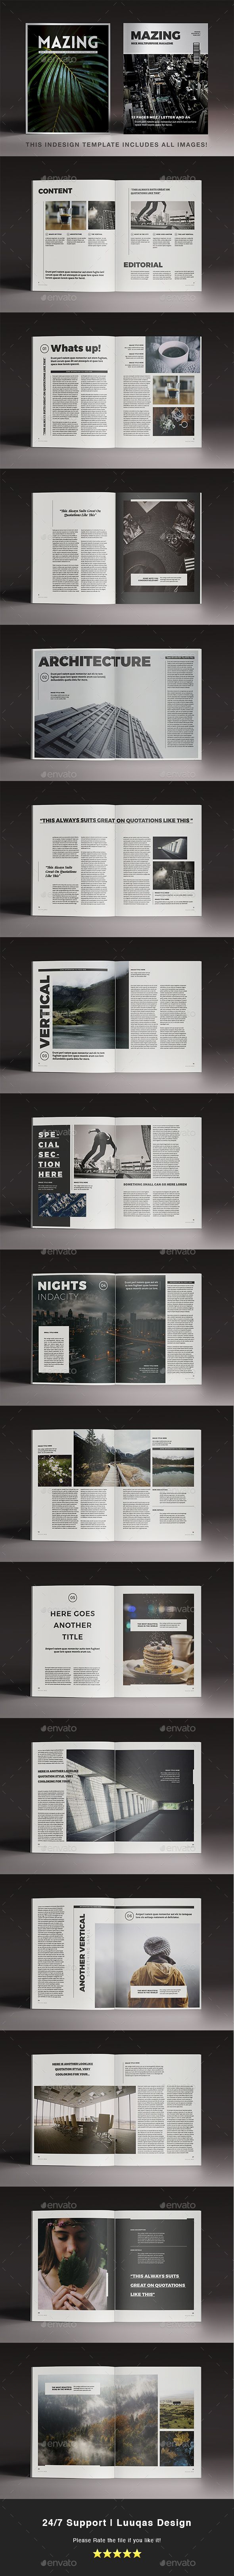 Mazing Magazine Template - Magazines Print Templates Download here : https://graphicriver.net/item/mazing-magazine-template/18942015?s_rank=103&ref=Al-fatih